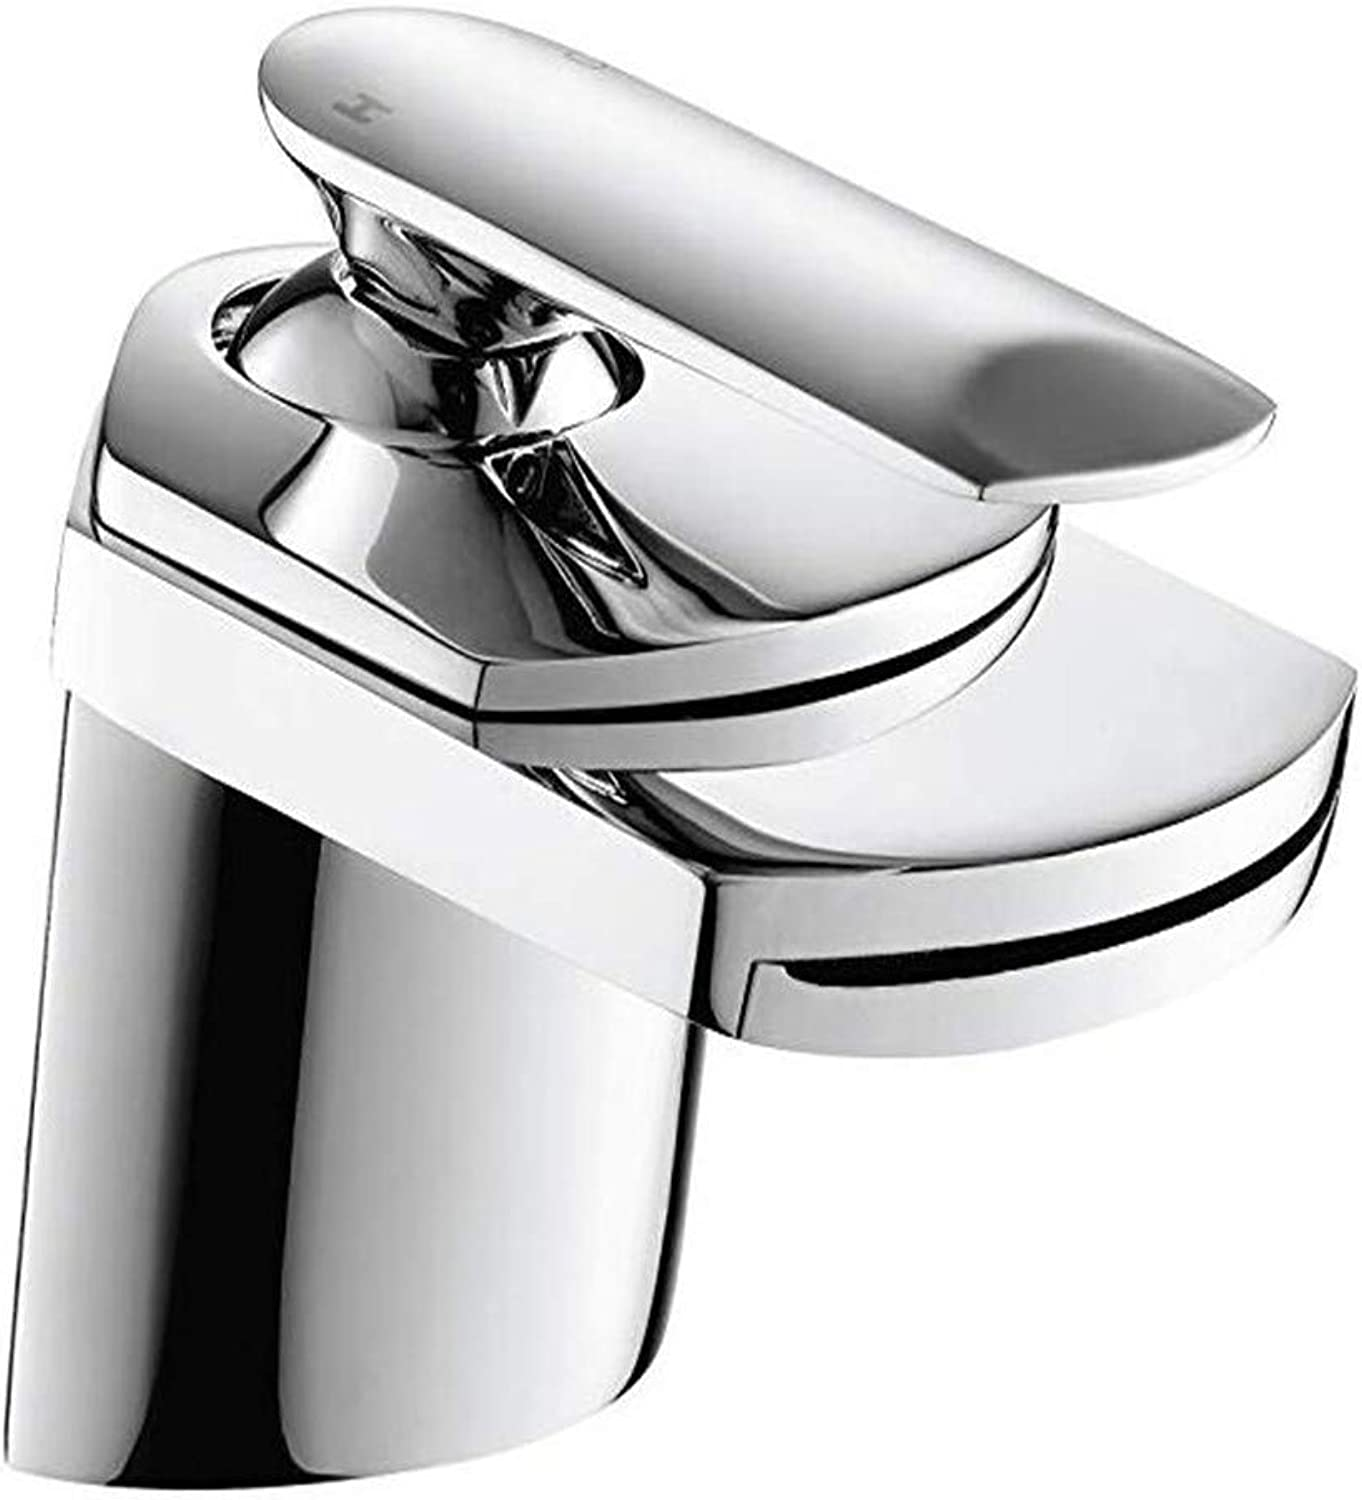 Taps Kitchen Faucetbathroom Sink Tapwaterfall Basin Sink Mixer Tap Chrome Bathroom Lever Faucet